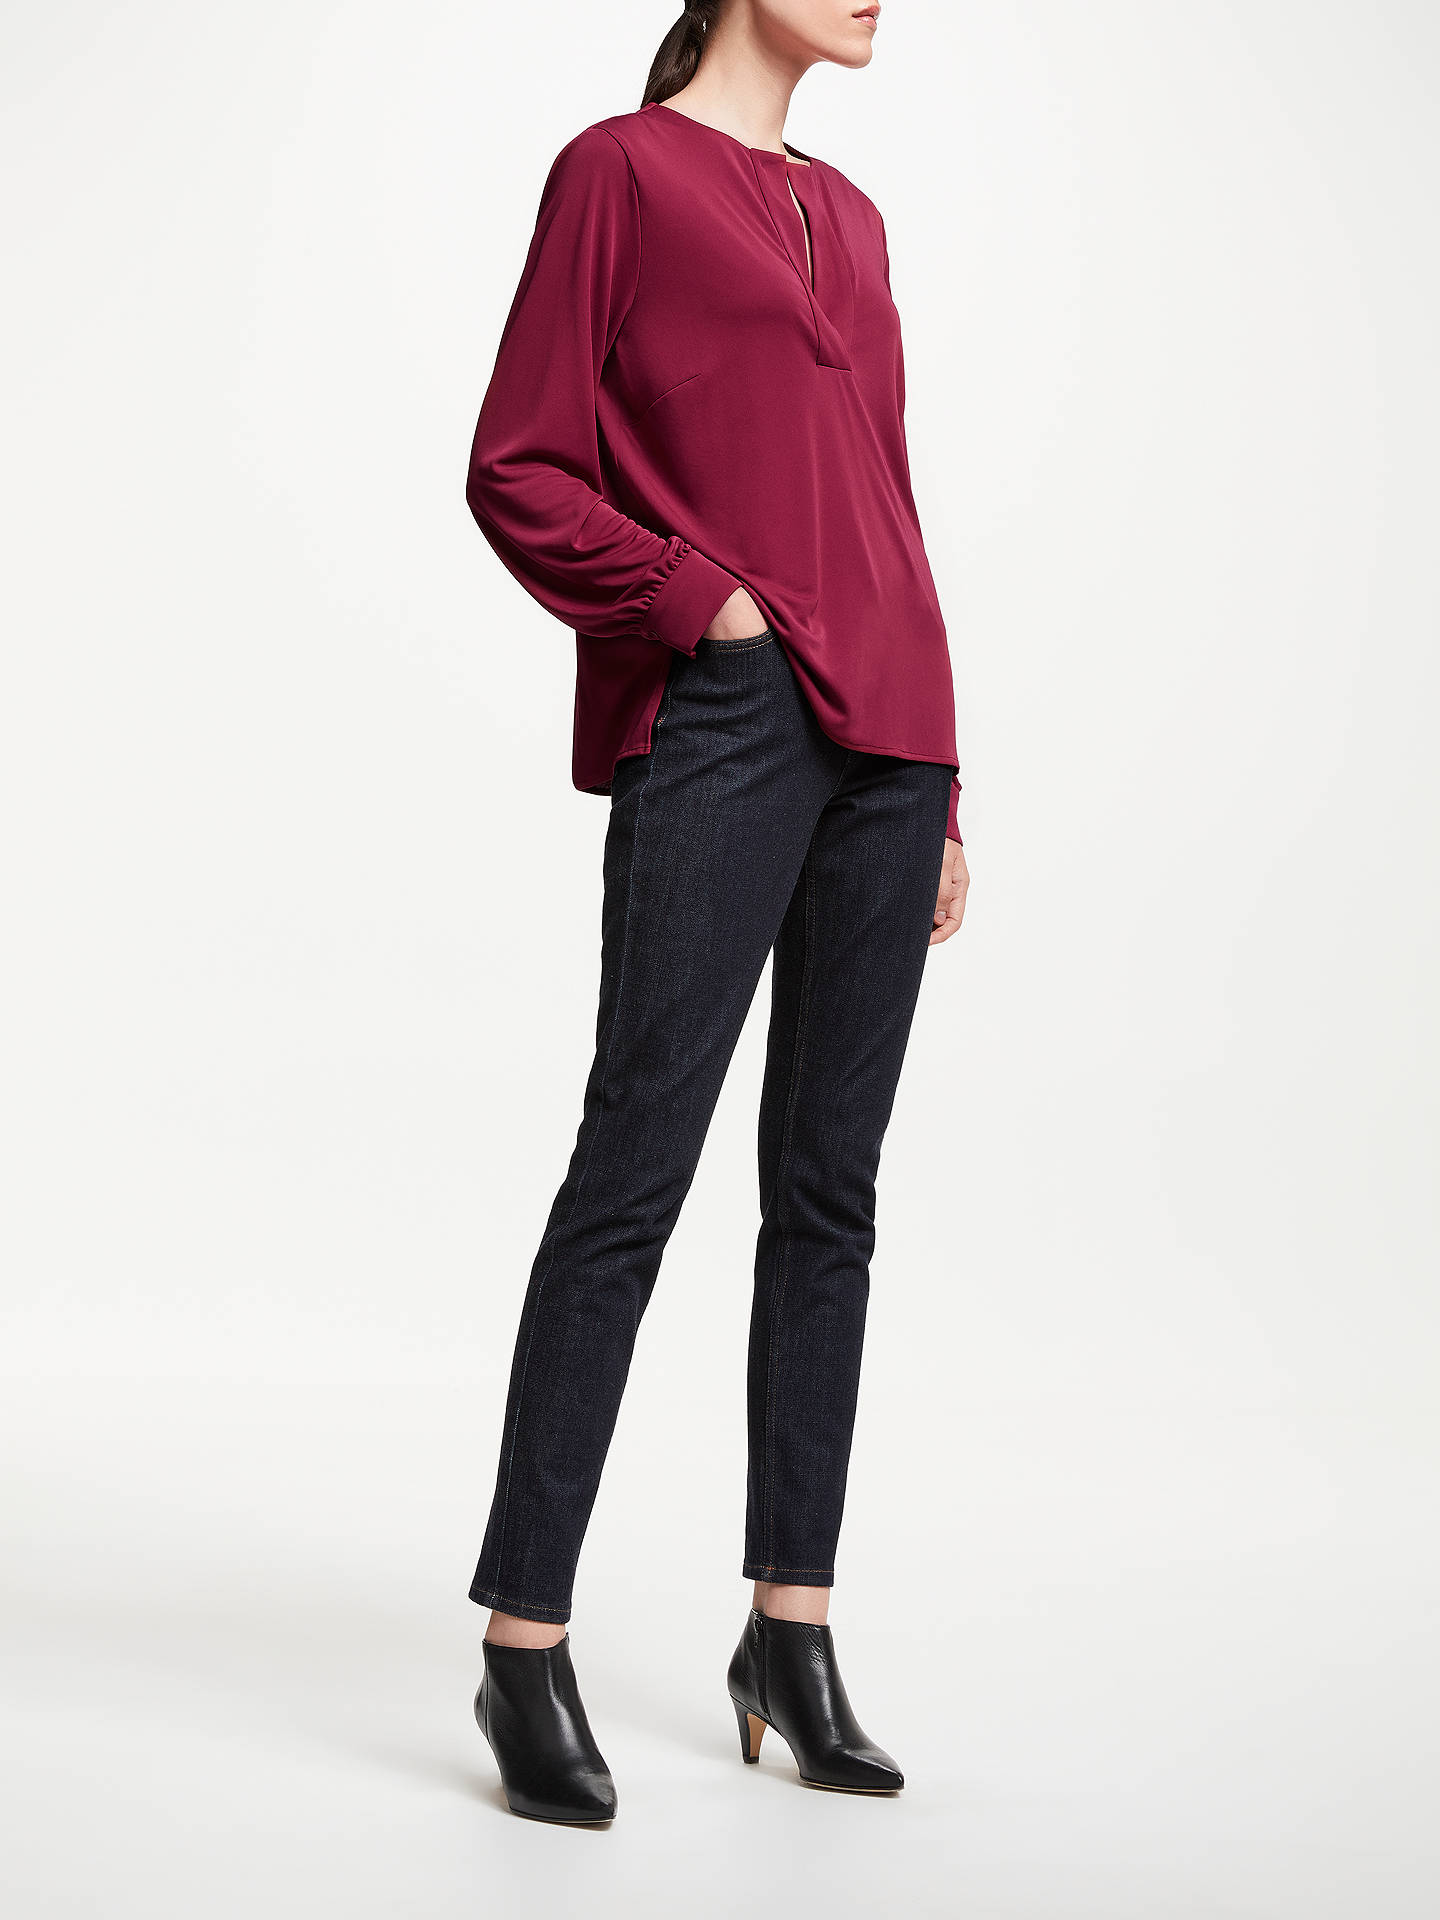 BuyJohn Lewis & Partners Long Sleeve Notch Neck Top, Burgundy, 8 Online at johnlewis.com